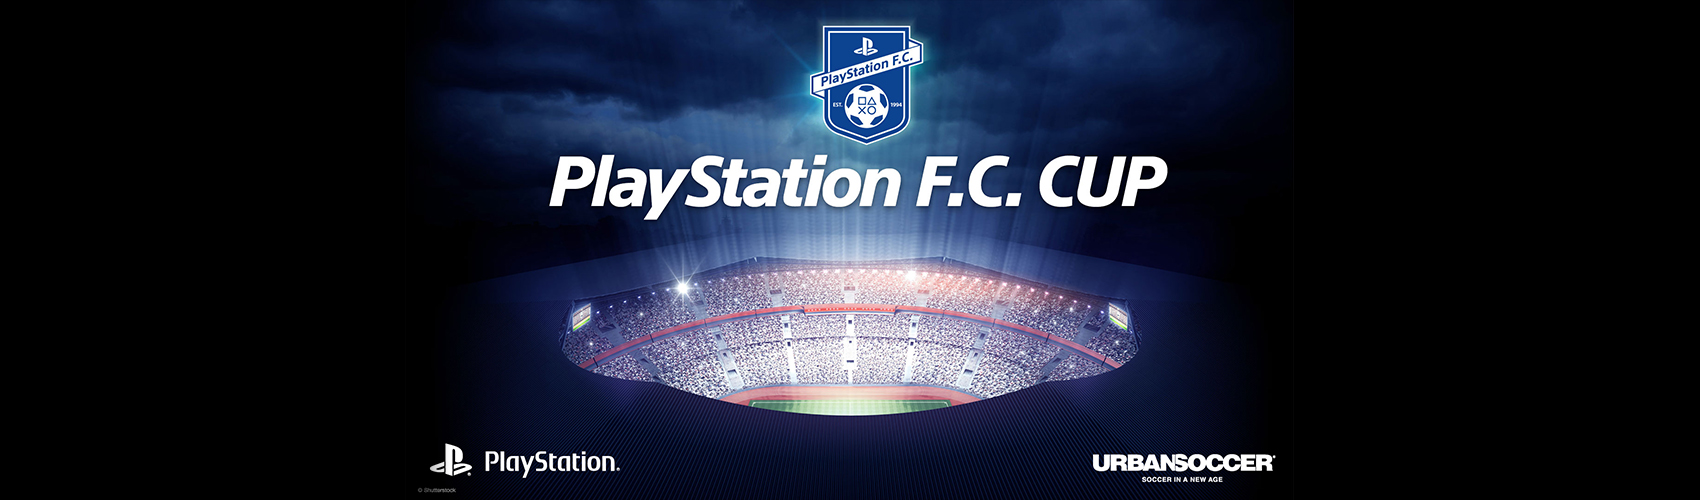 Slider-Playstation-FC-CUP-2019